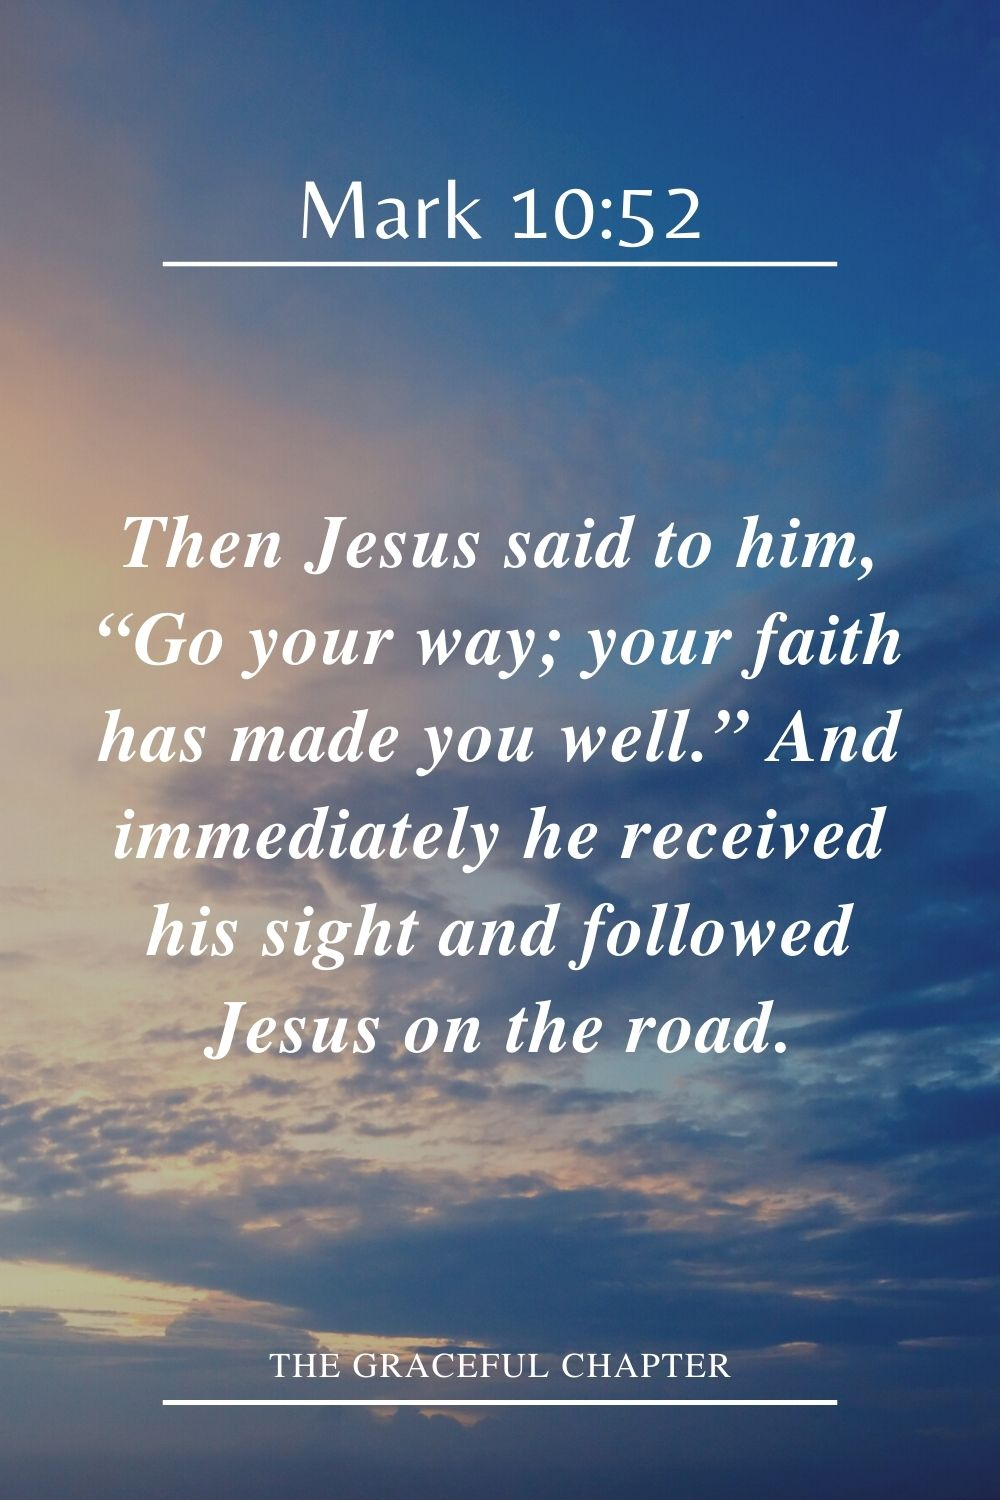 "Then Jesus said to him, ""Go your way; your faith has made you well."" And immediately he received his sight and followed Jesus on the road. Mark 10:52"